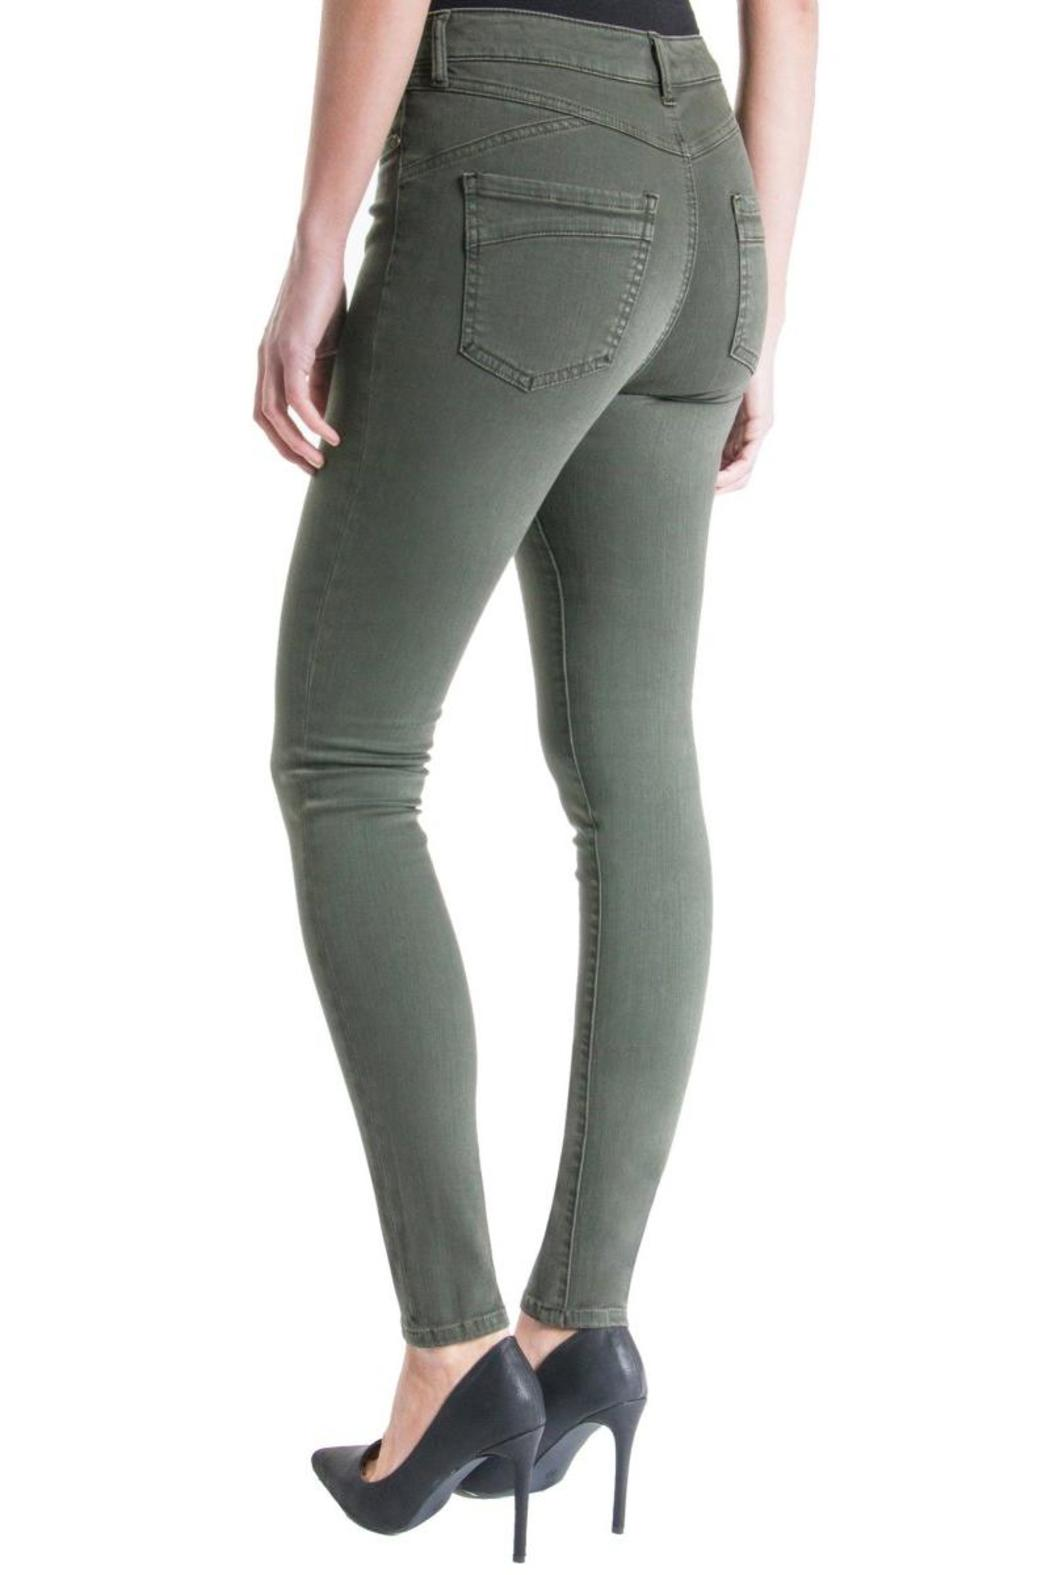 Liverpool Jeans Company Olive Twill Skinny - Front Full Image